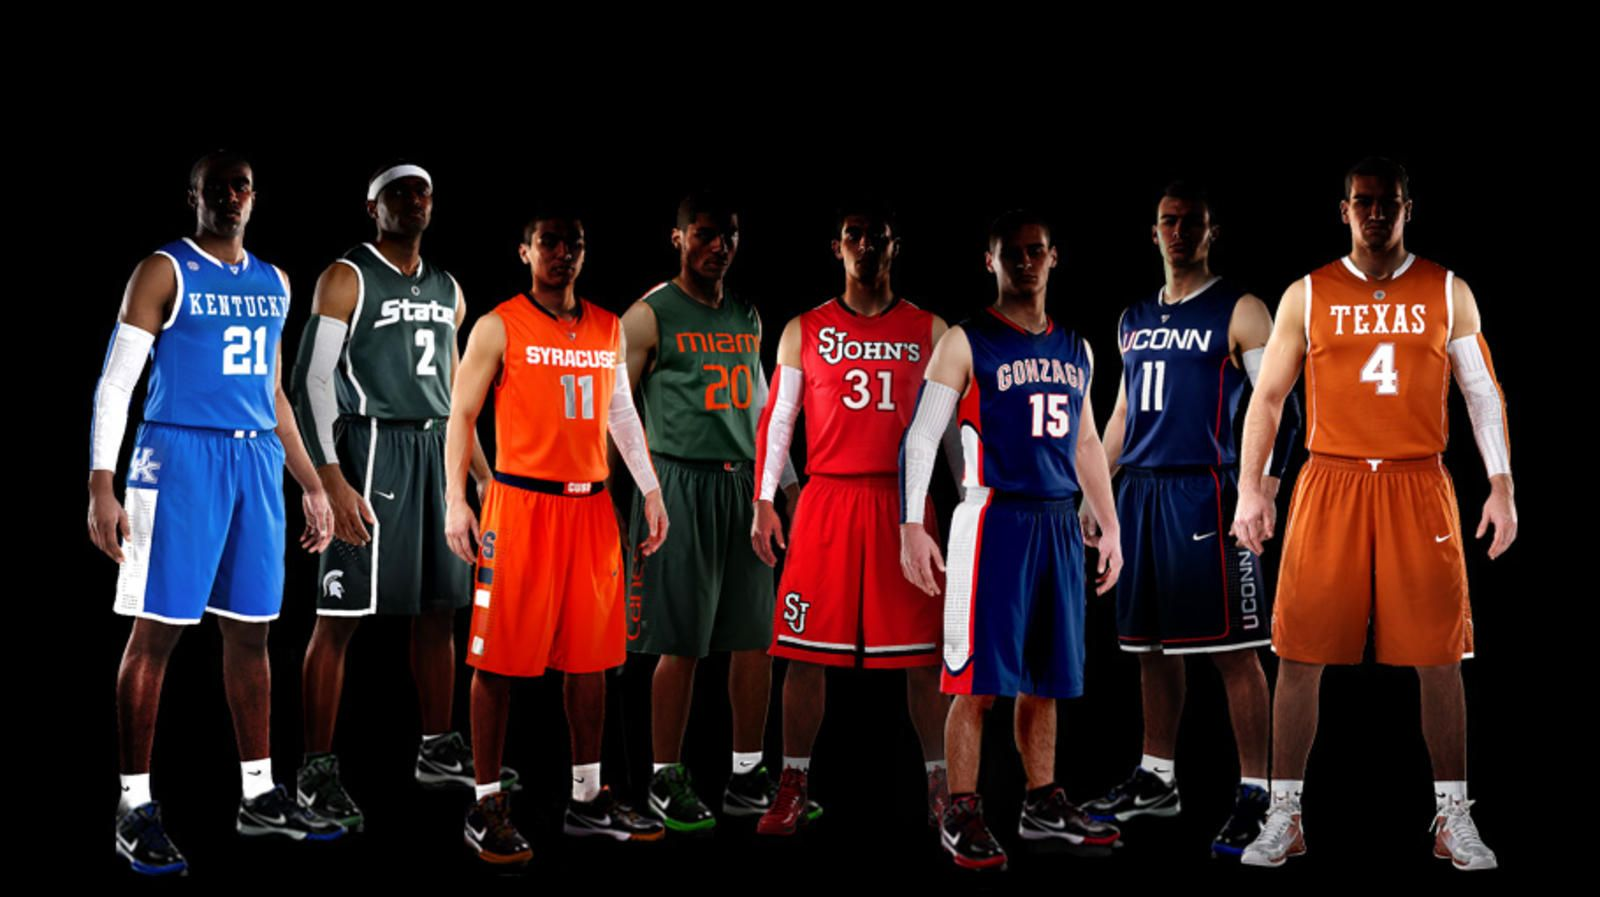 ncaa college basketball uniforms - Google Search  f8a970deb